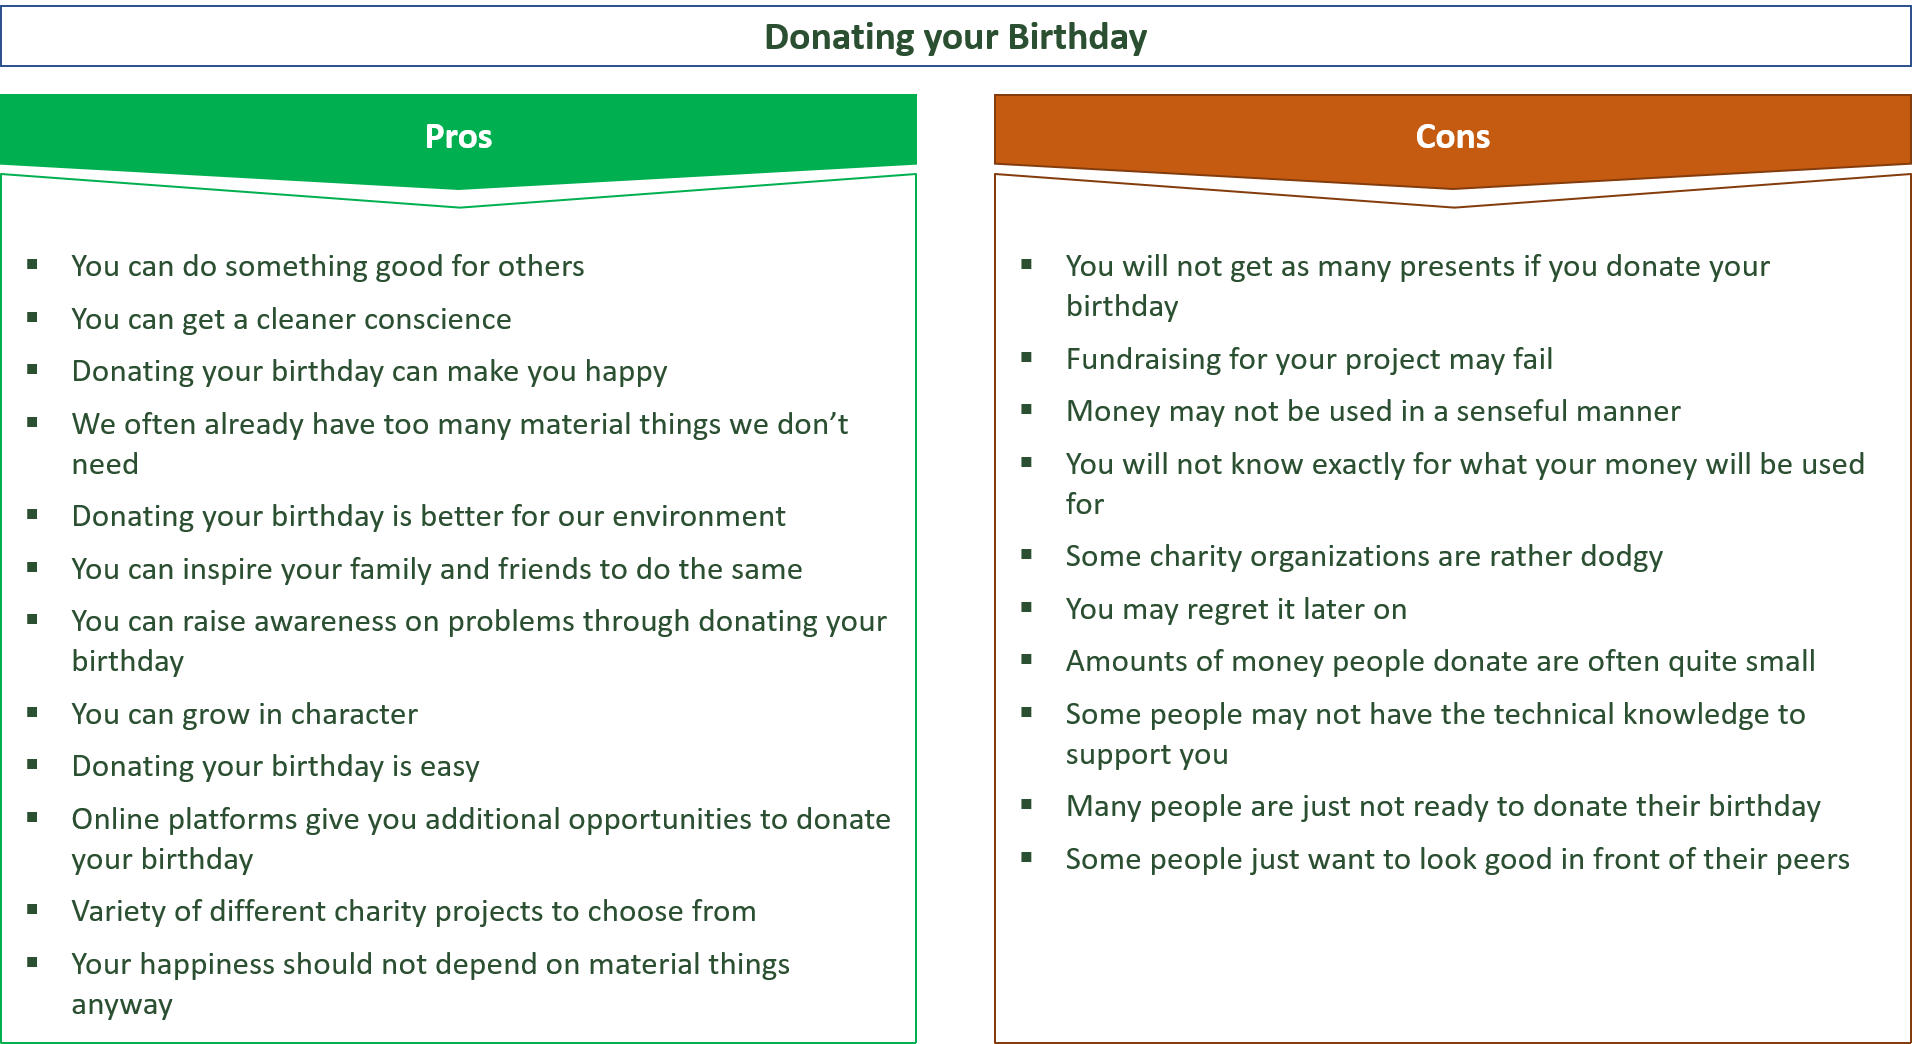 advantages and disadvantages of donating your birthday